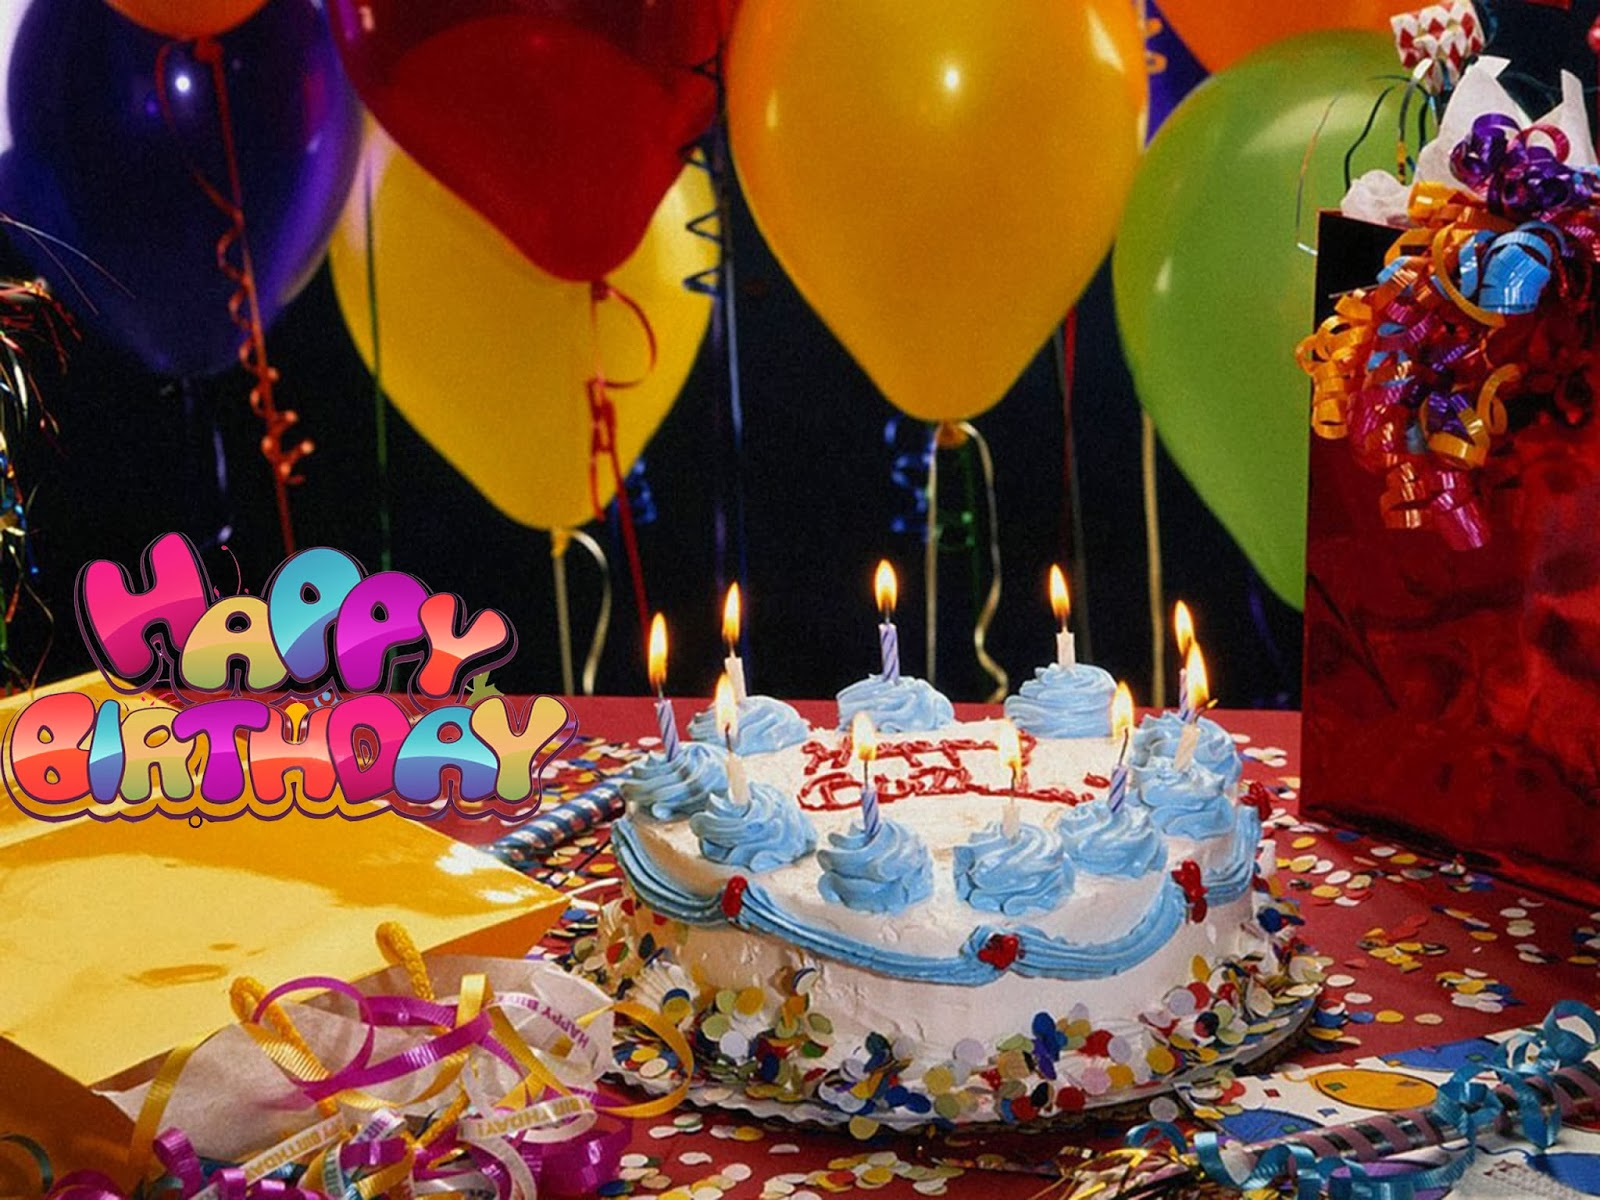 Happy-Birthday-Cake-WishesWith-Baloons-Image-HD-Wide